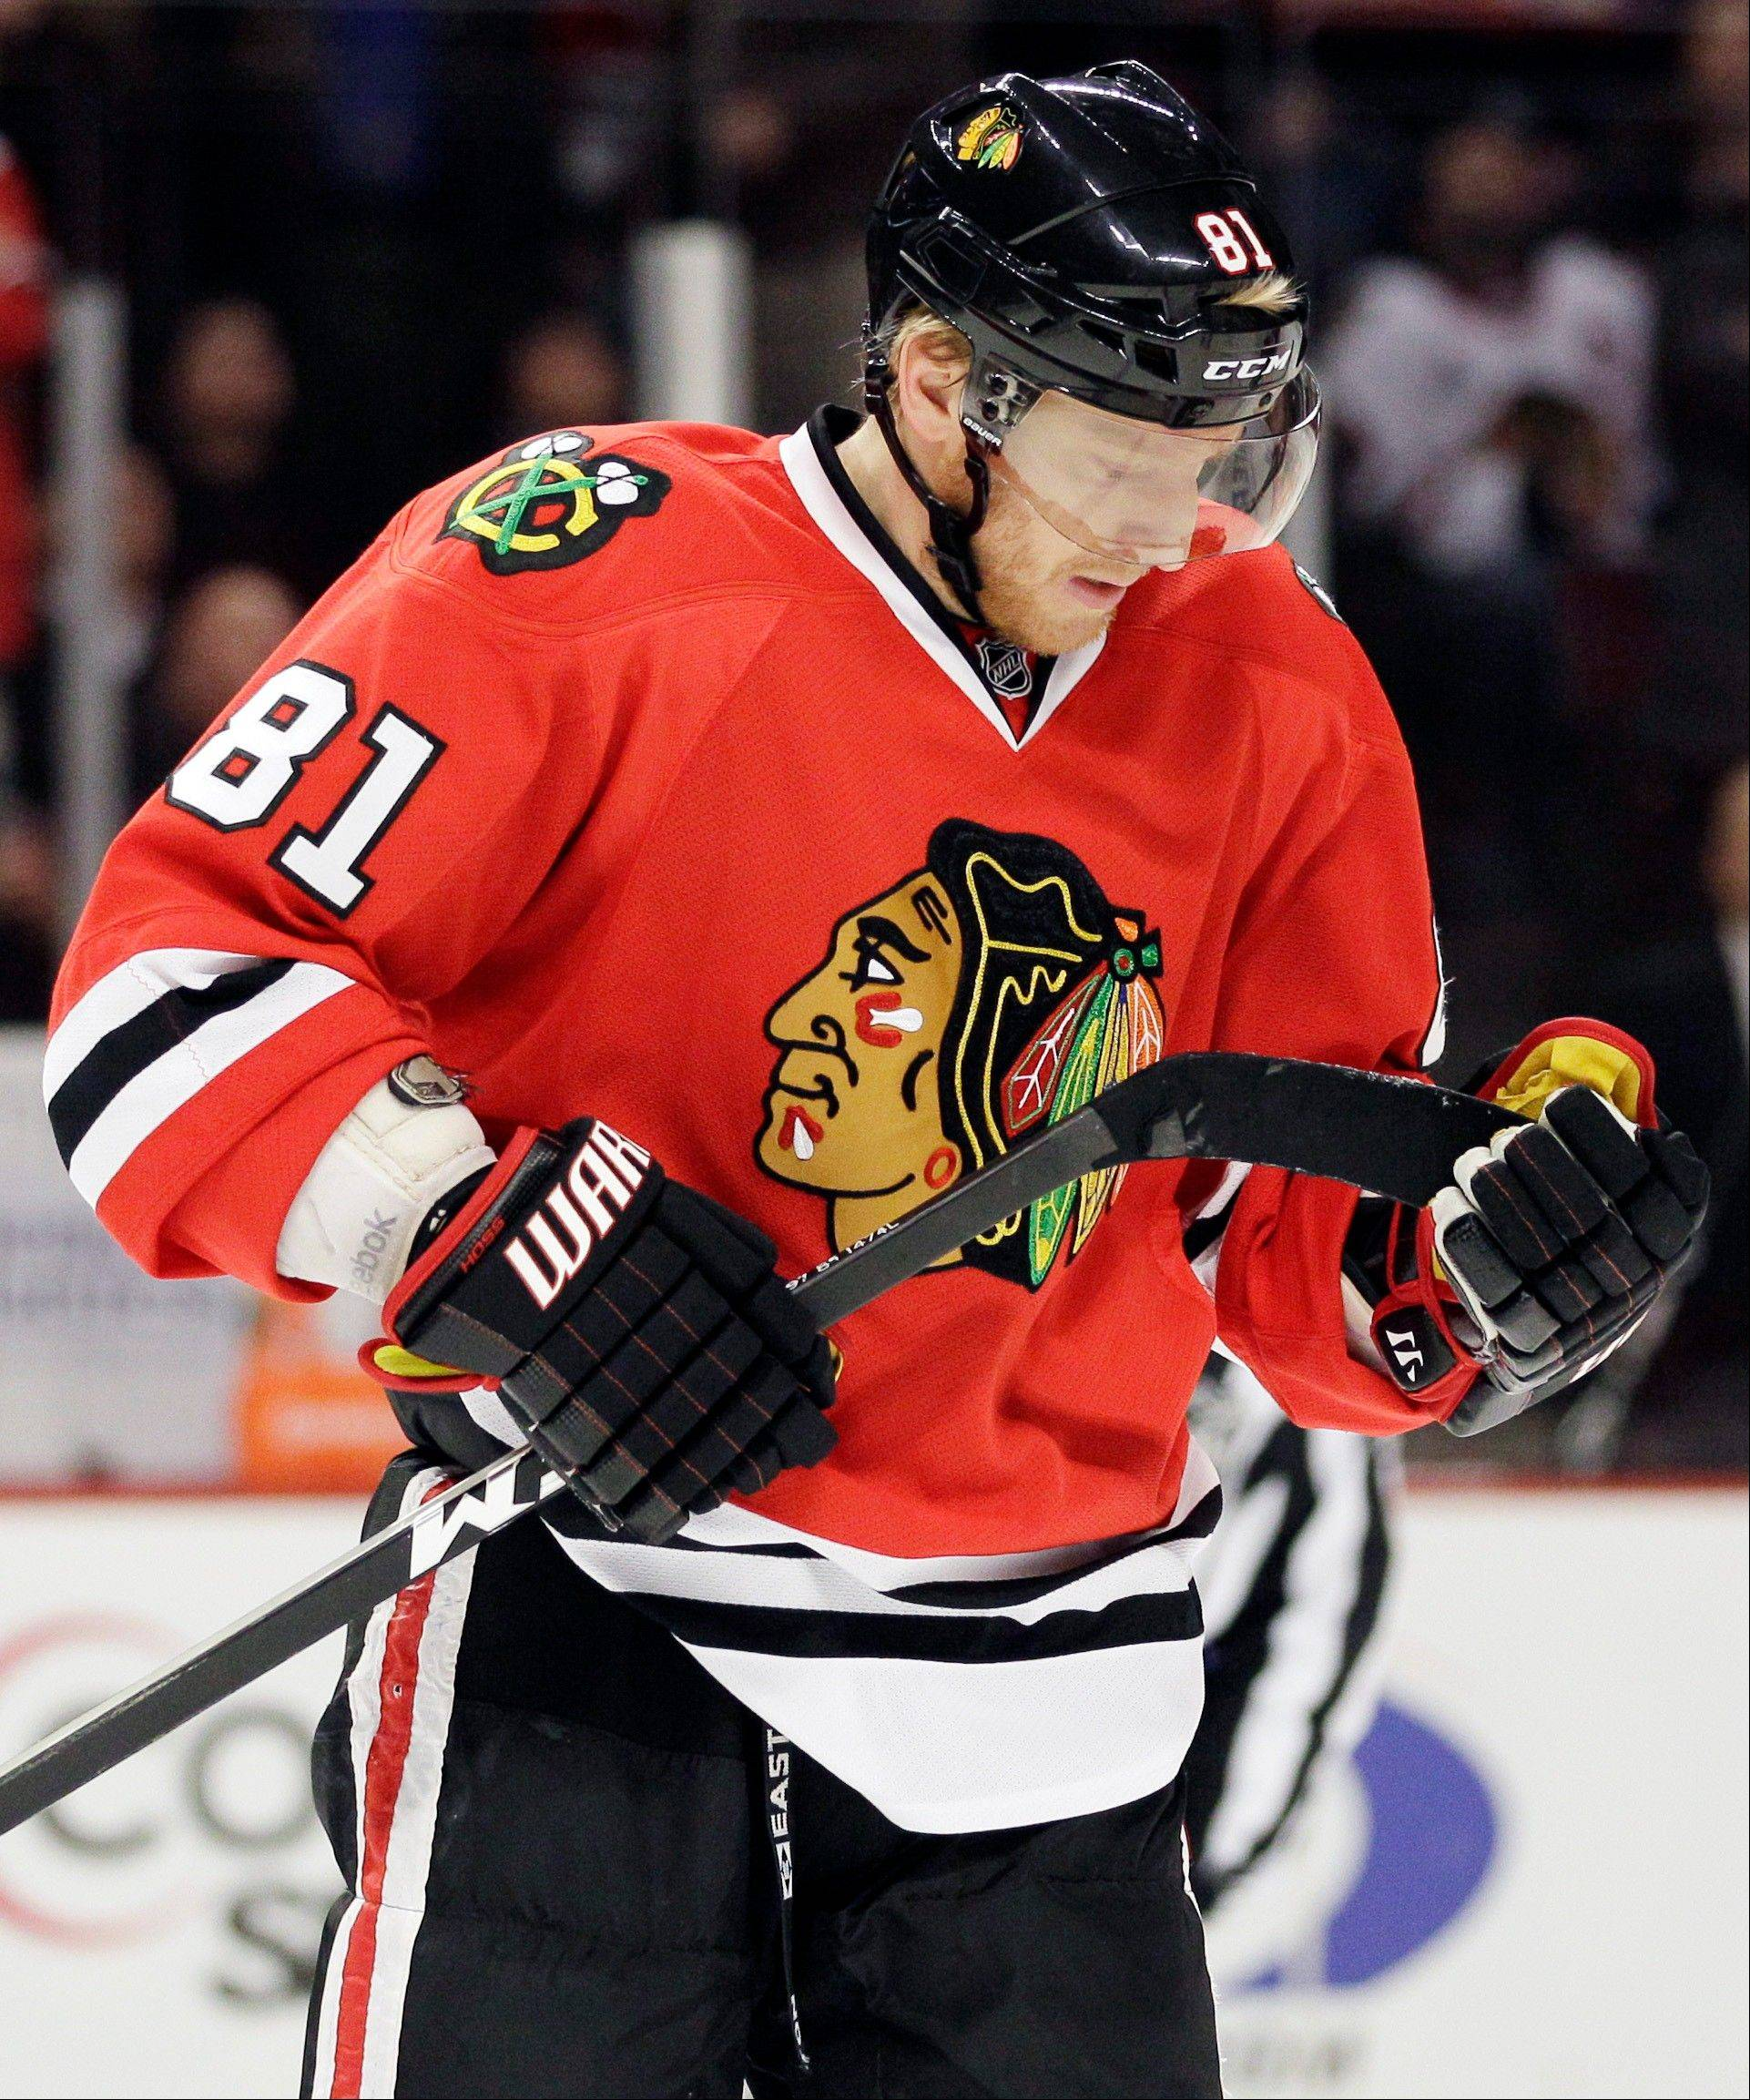 Hawks' Hossa proud to join 1,000-game club